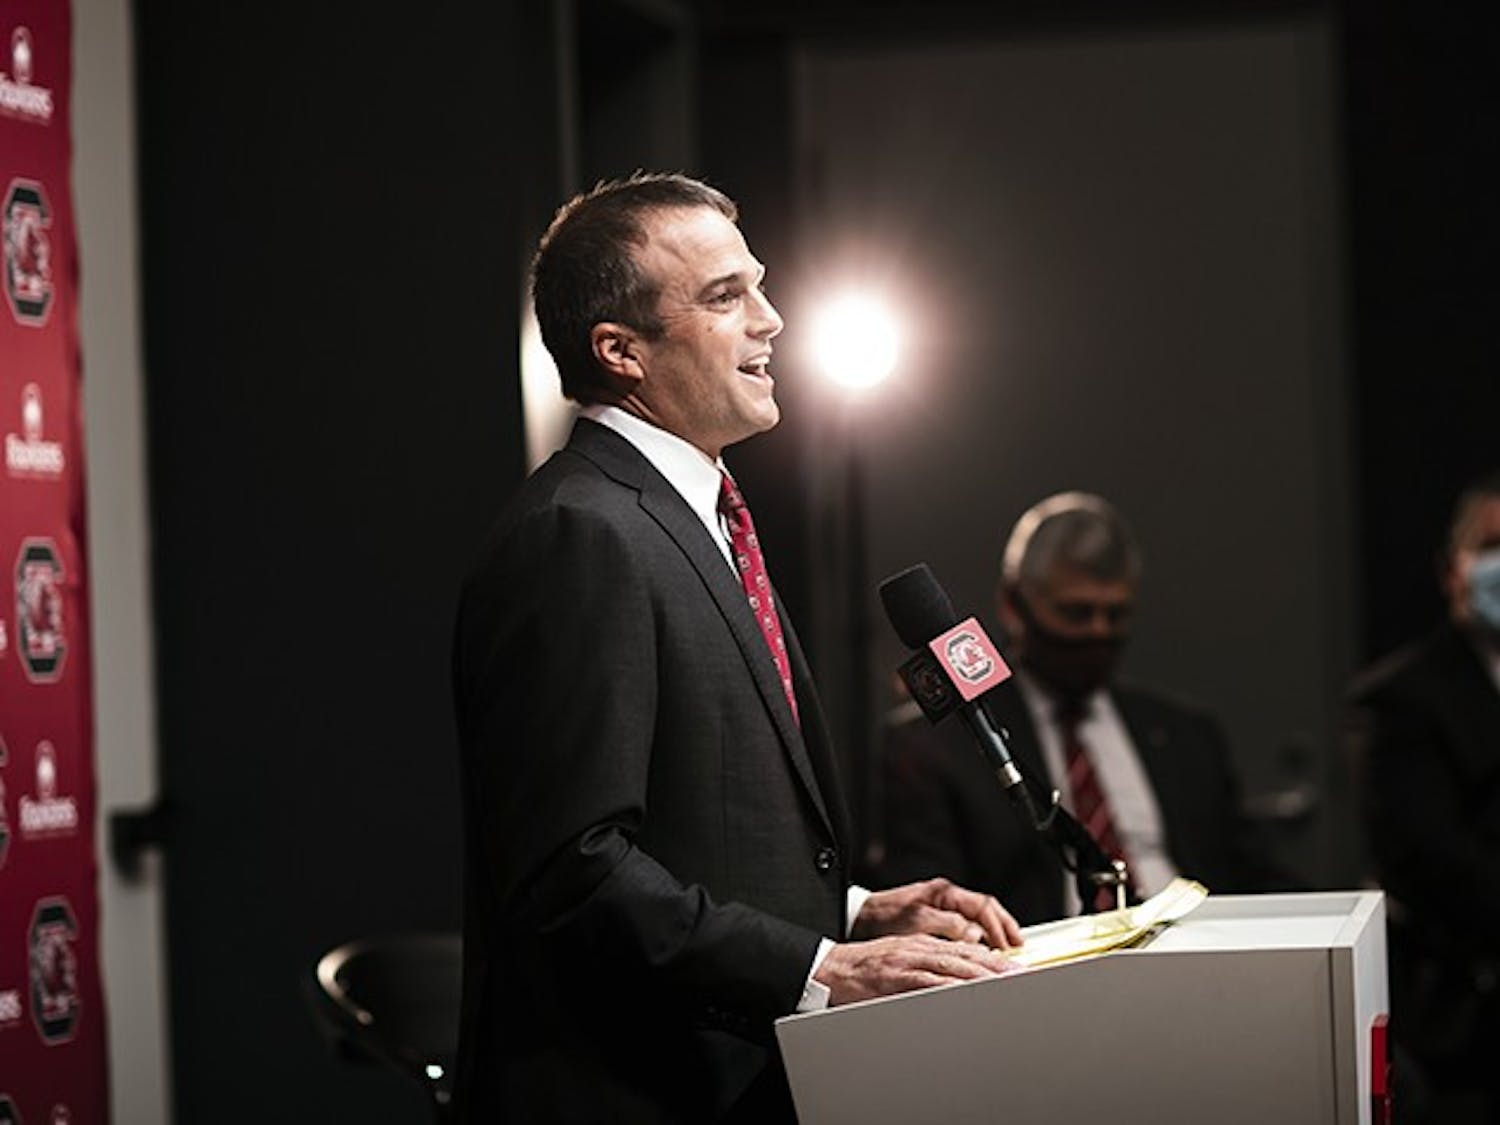 Head coach Shane Beamer said Wednesday that December's signing class is the first step in the recruiting process for South Carolina.